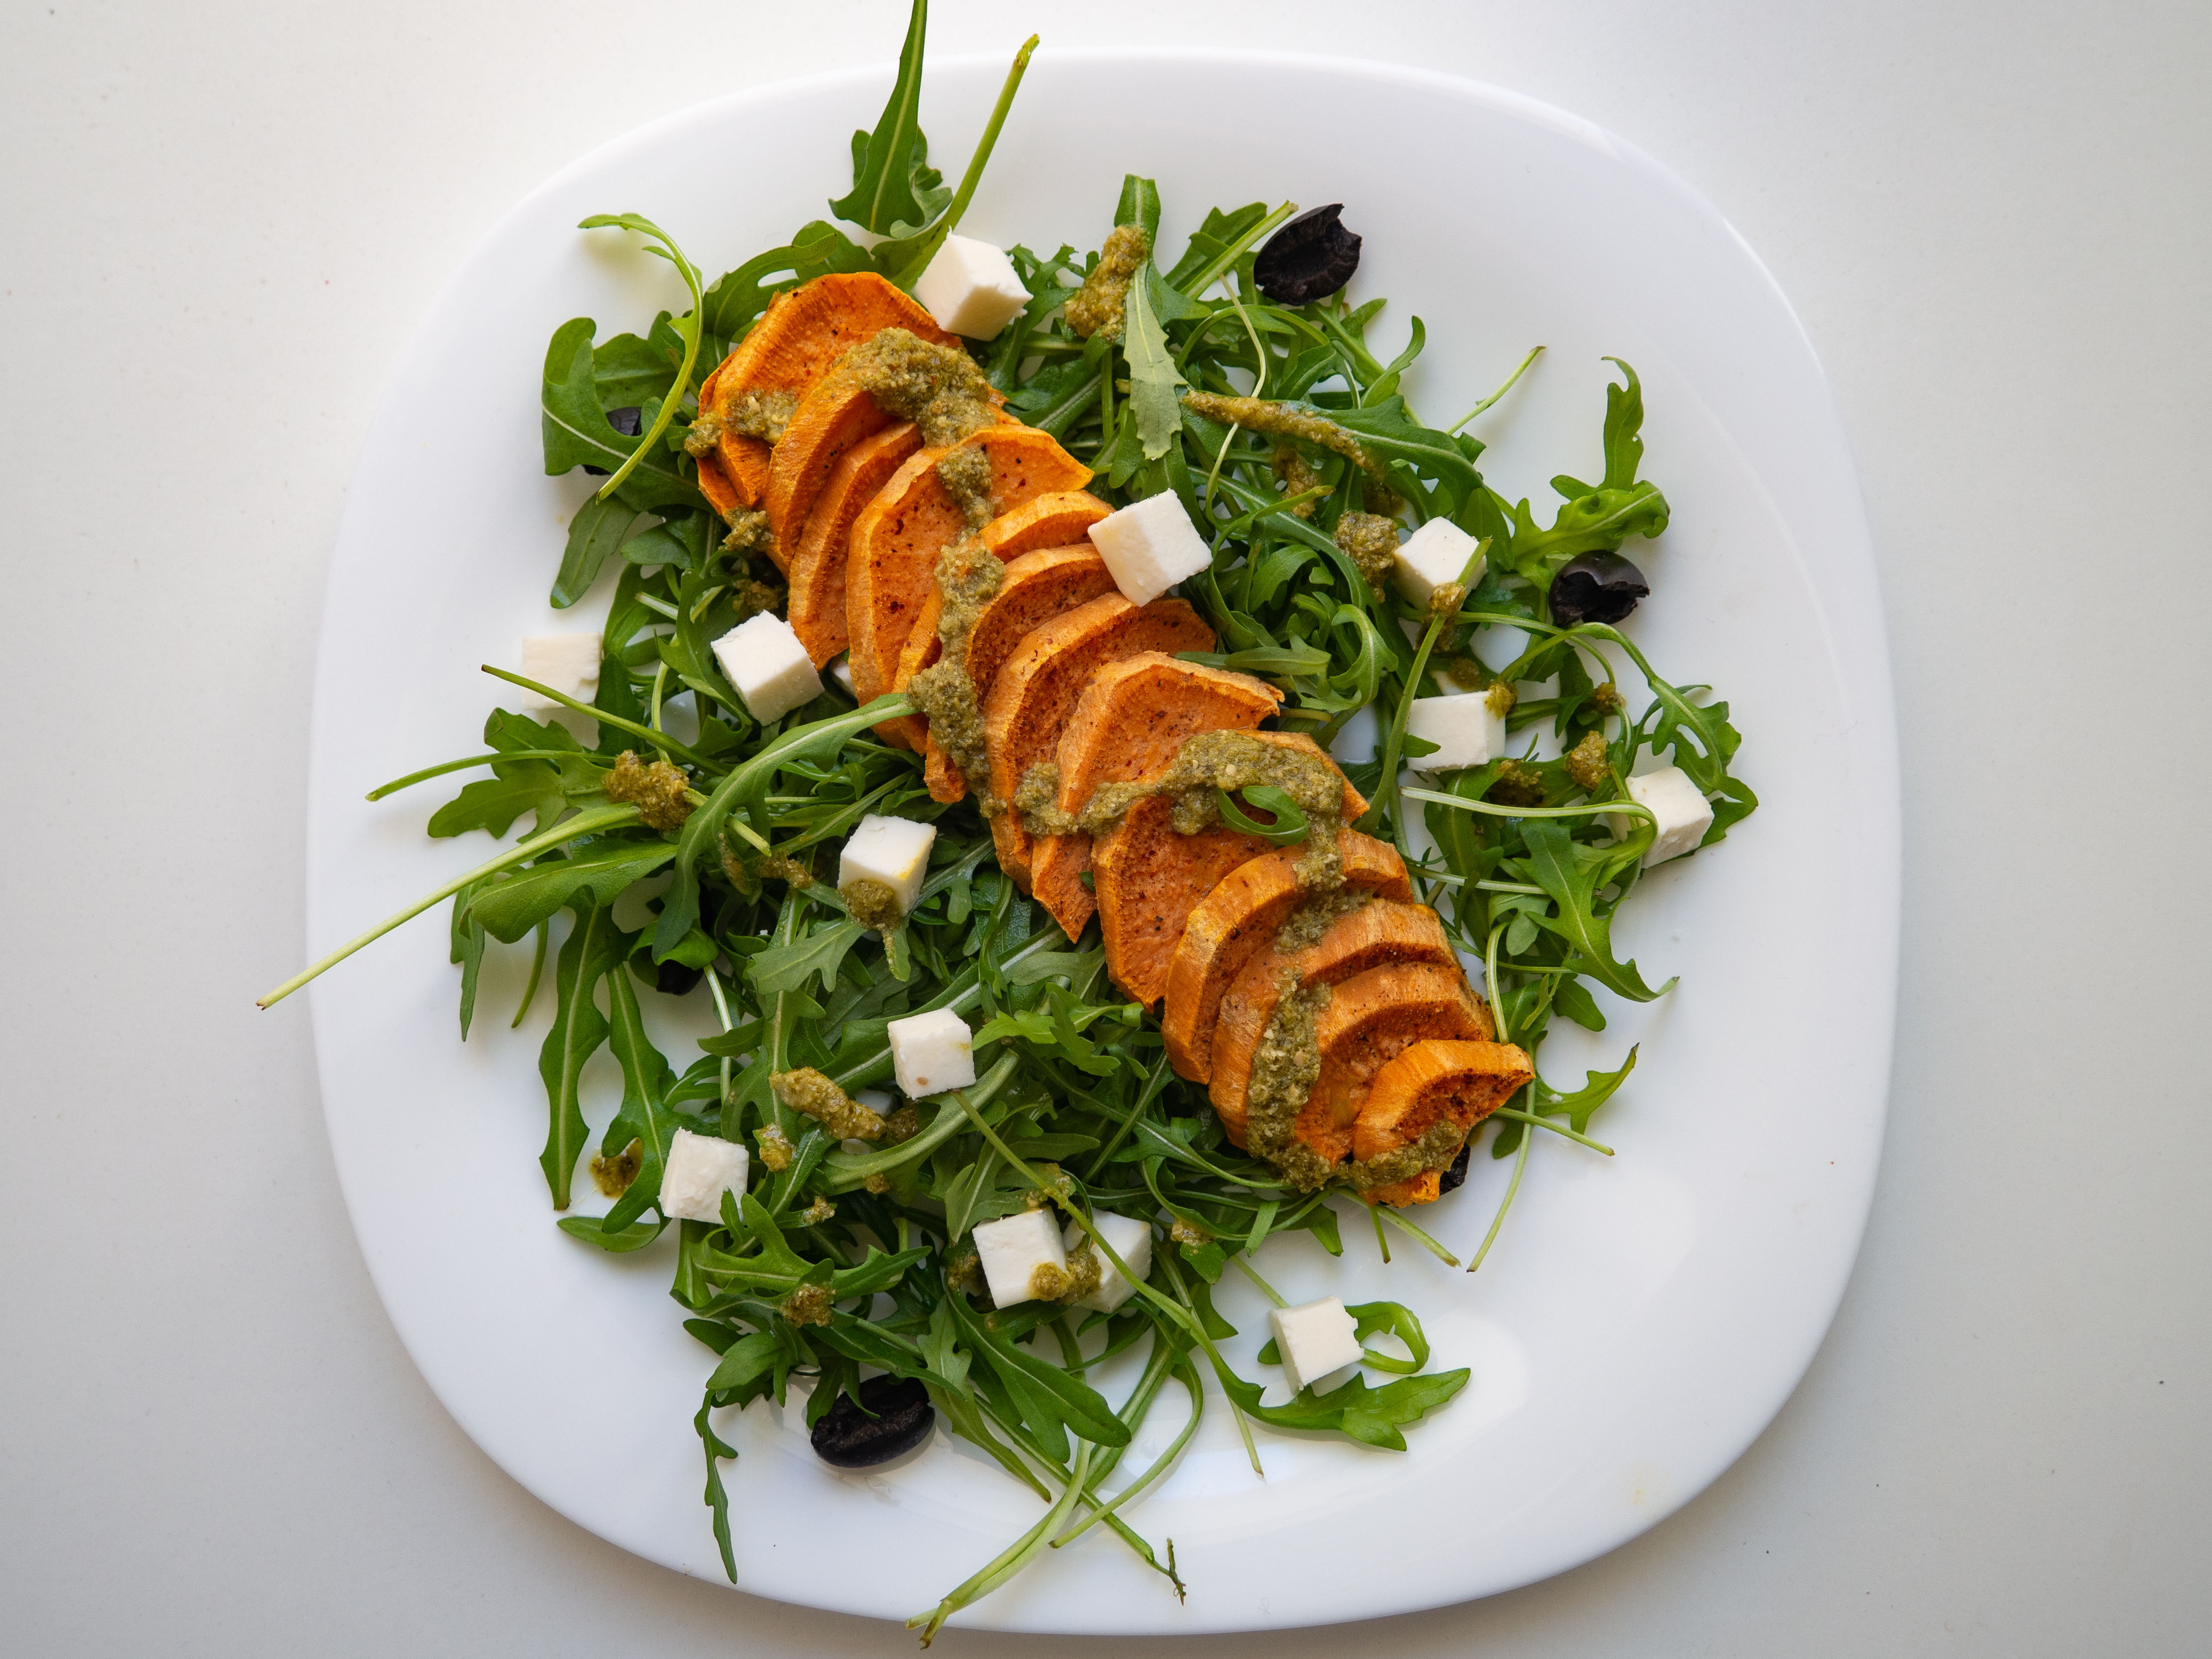 Sweet potatoes with feta cheese and pesto on rocket